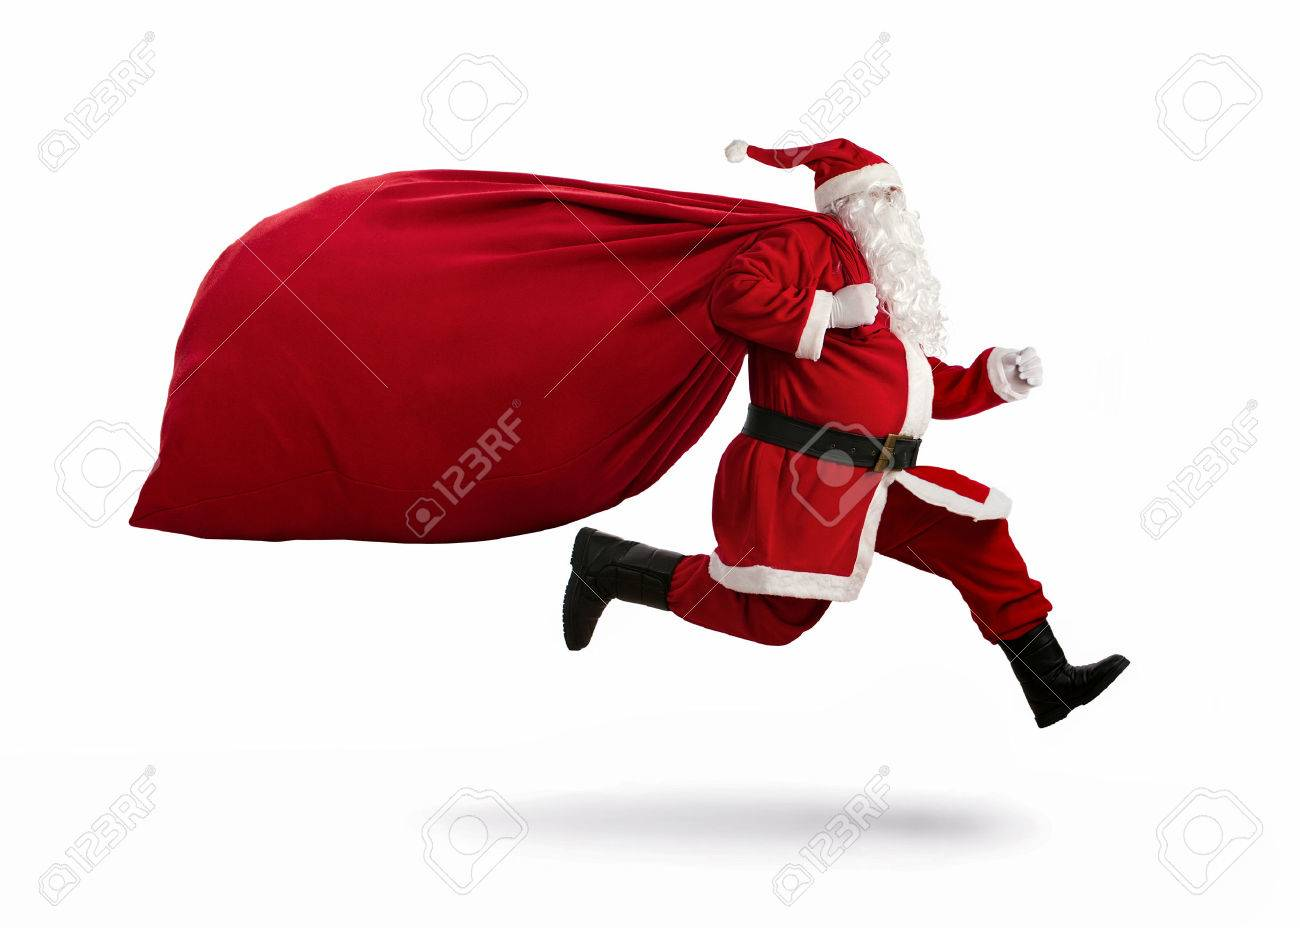 Santa Claus on the run to delivery christmas gifts isolated on white background Standard-Bild - 50754802